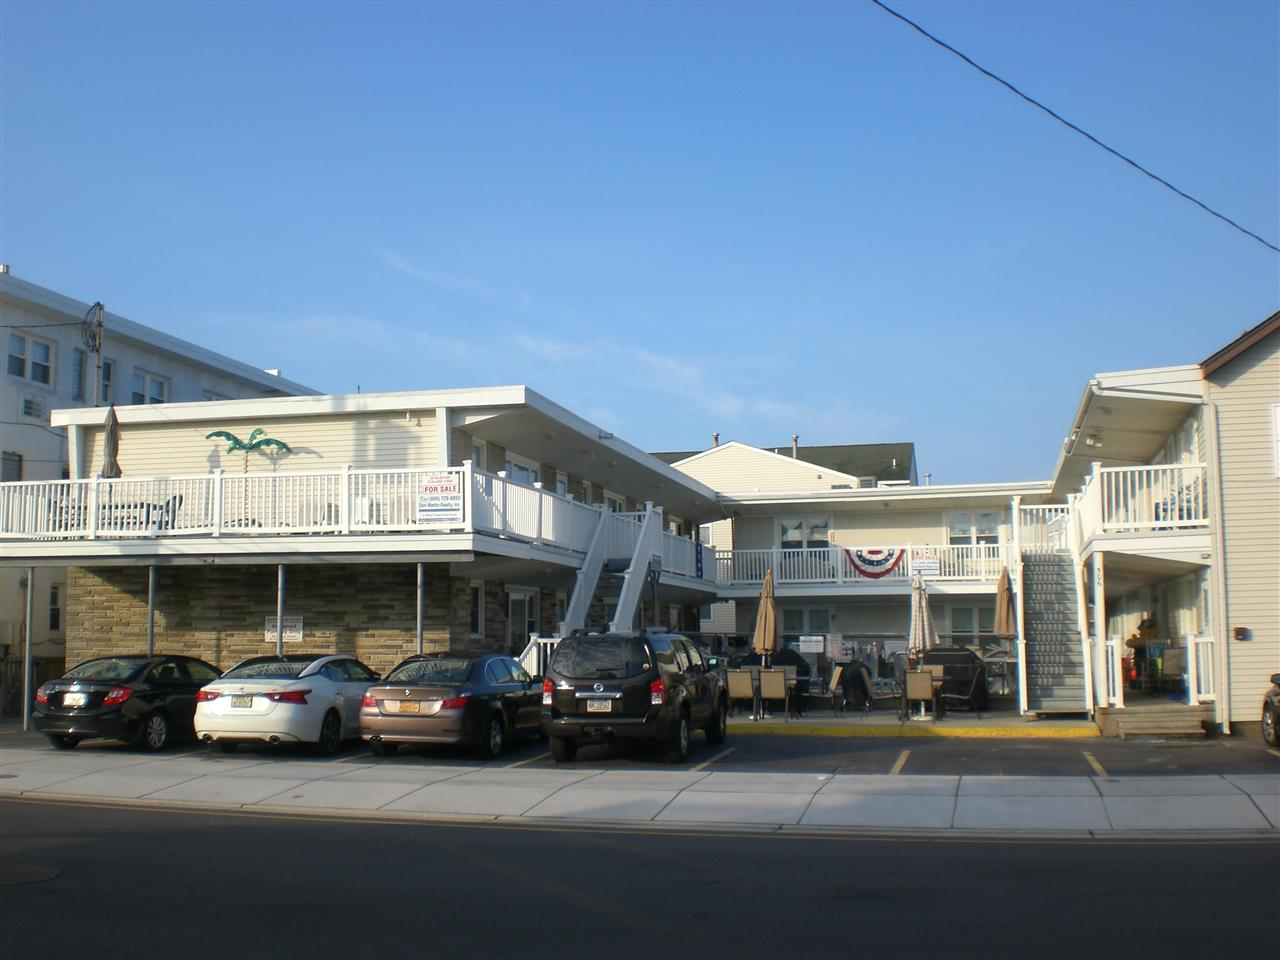 506, Unit 8 12th, North Wildwood